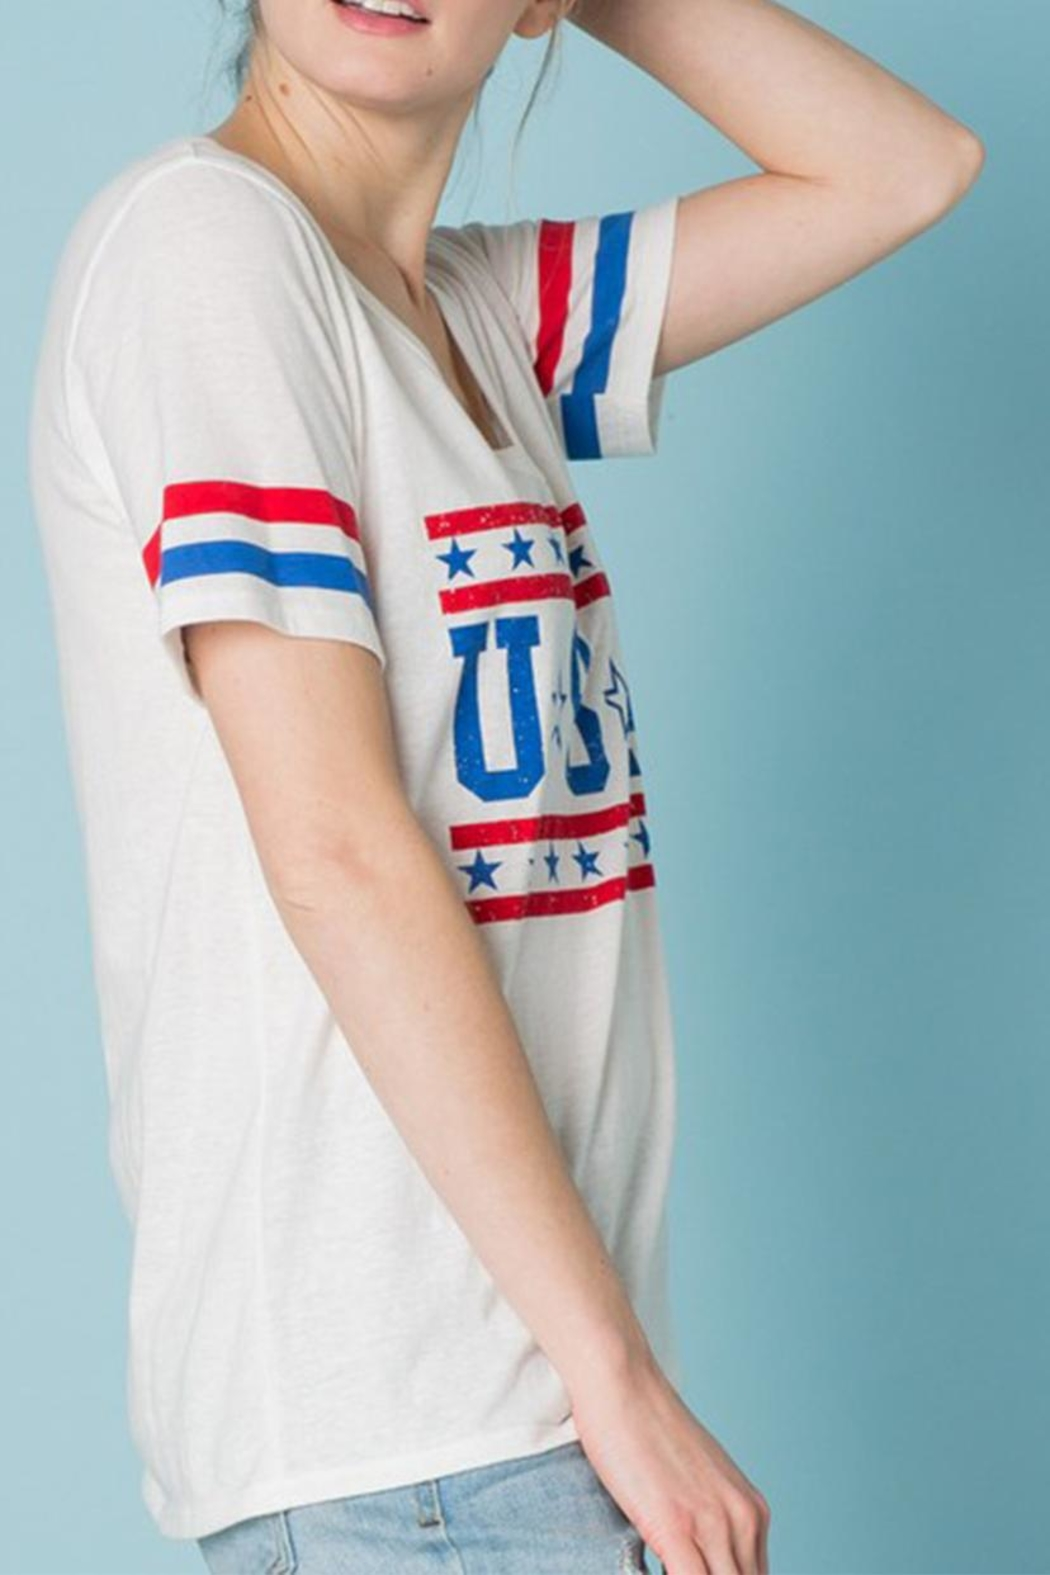 Sweet Claire u.s.a t Shirt - Side Cropped Image